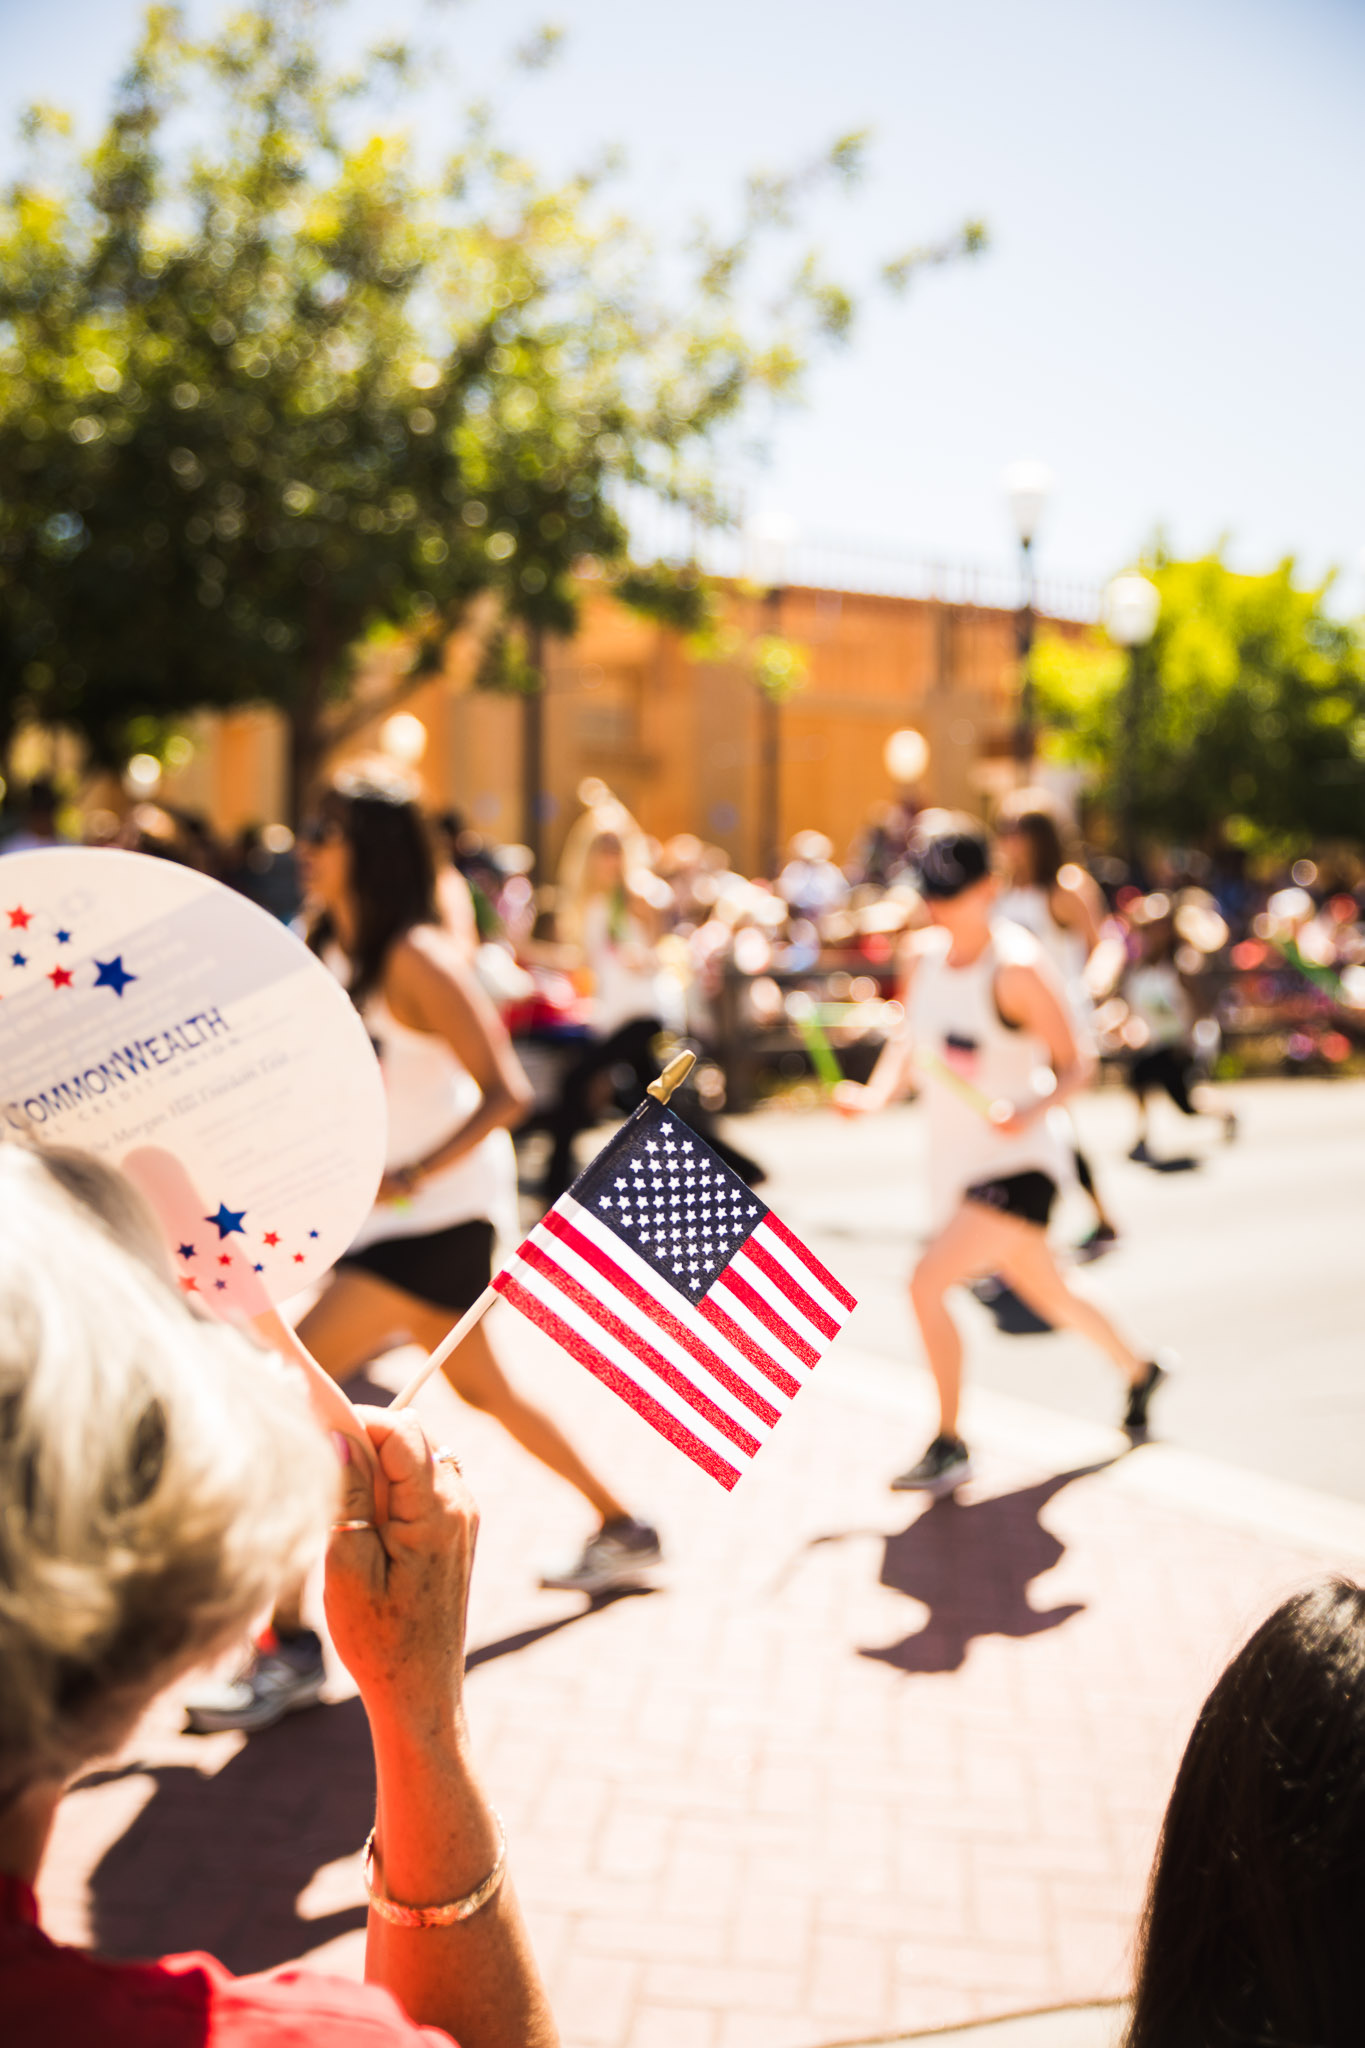 Archer_Inspired_Photography_Morgan_Hill_California_4th_of_july_parade-108.jpg